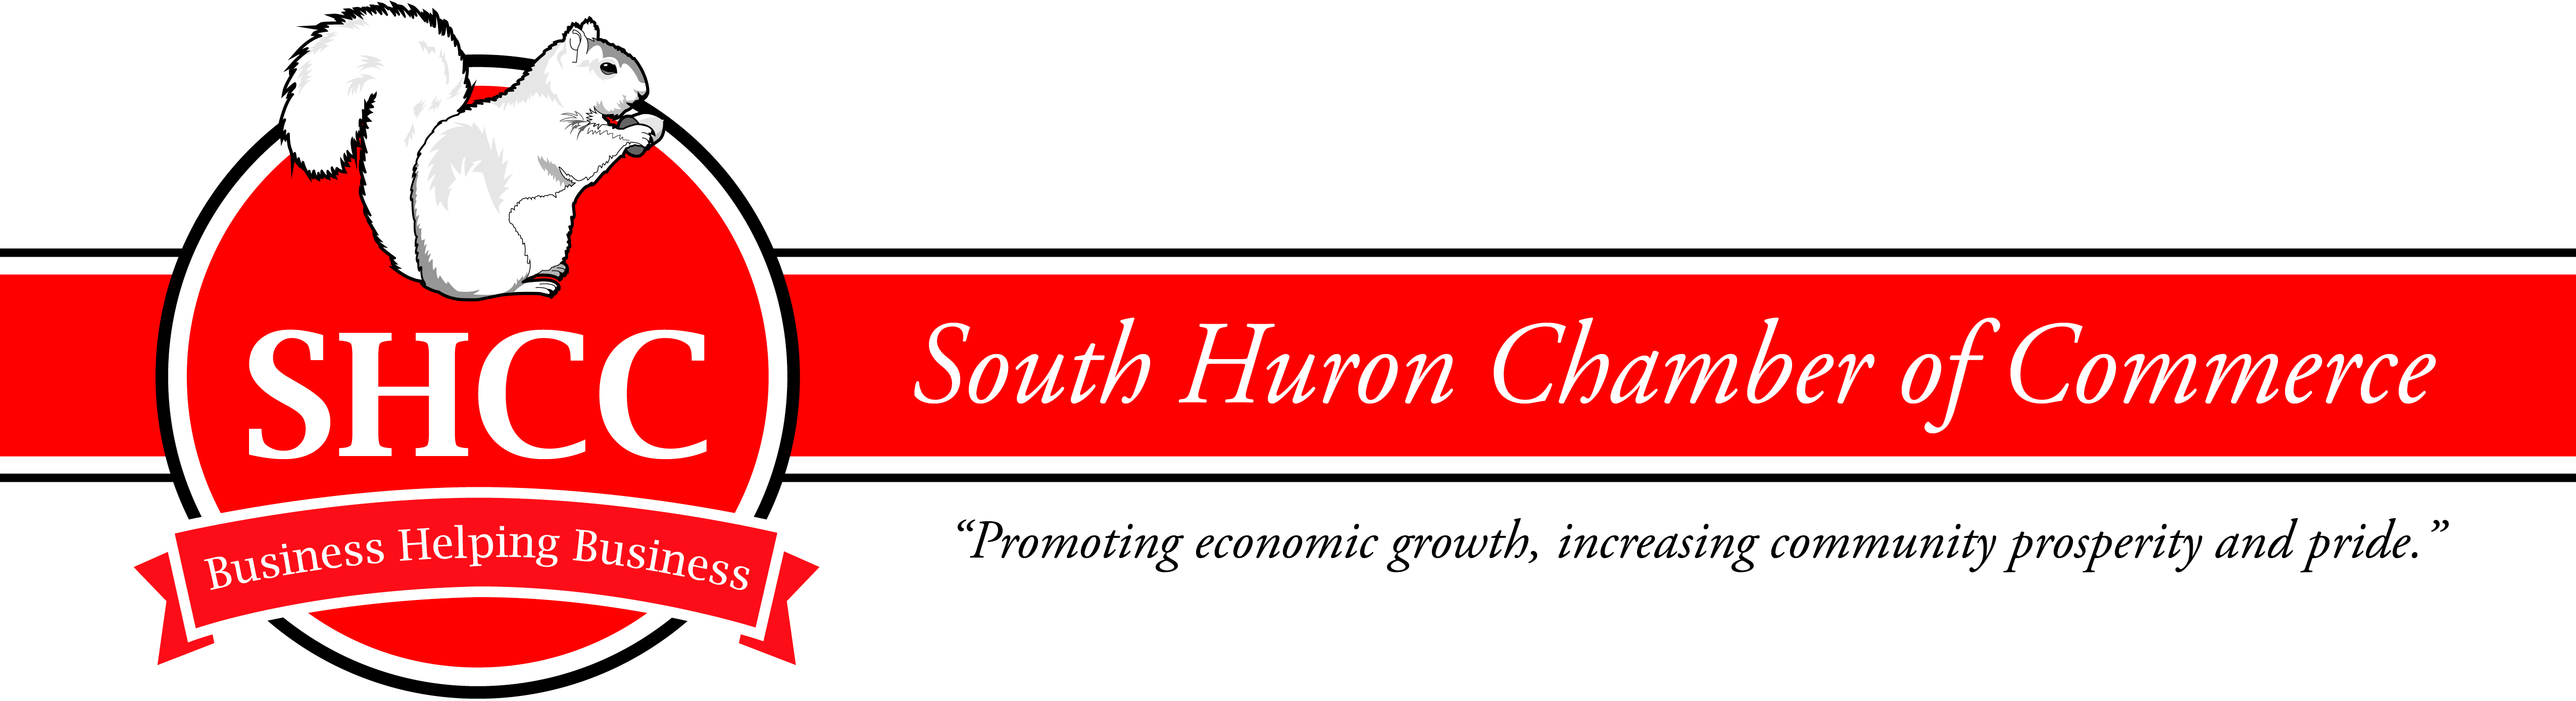 South Huron Chamber of Commerce banner